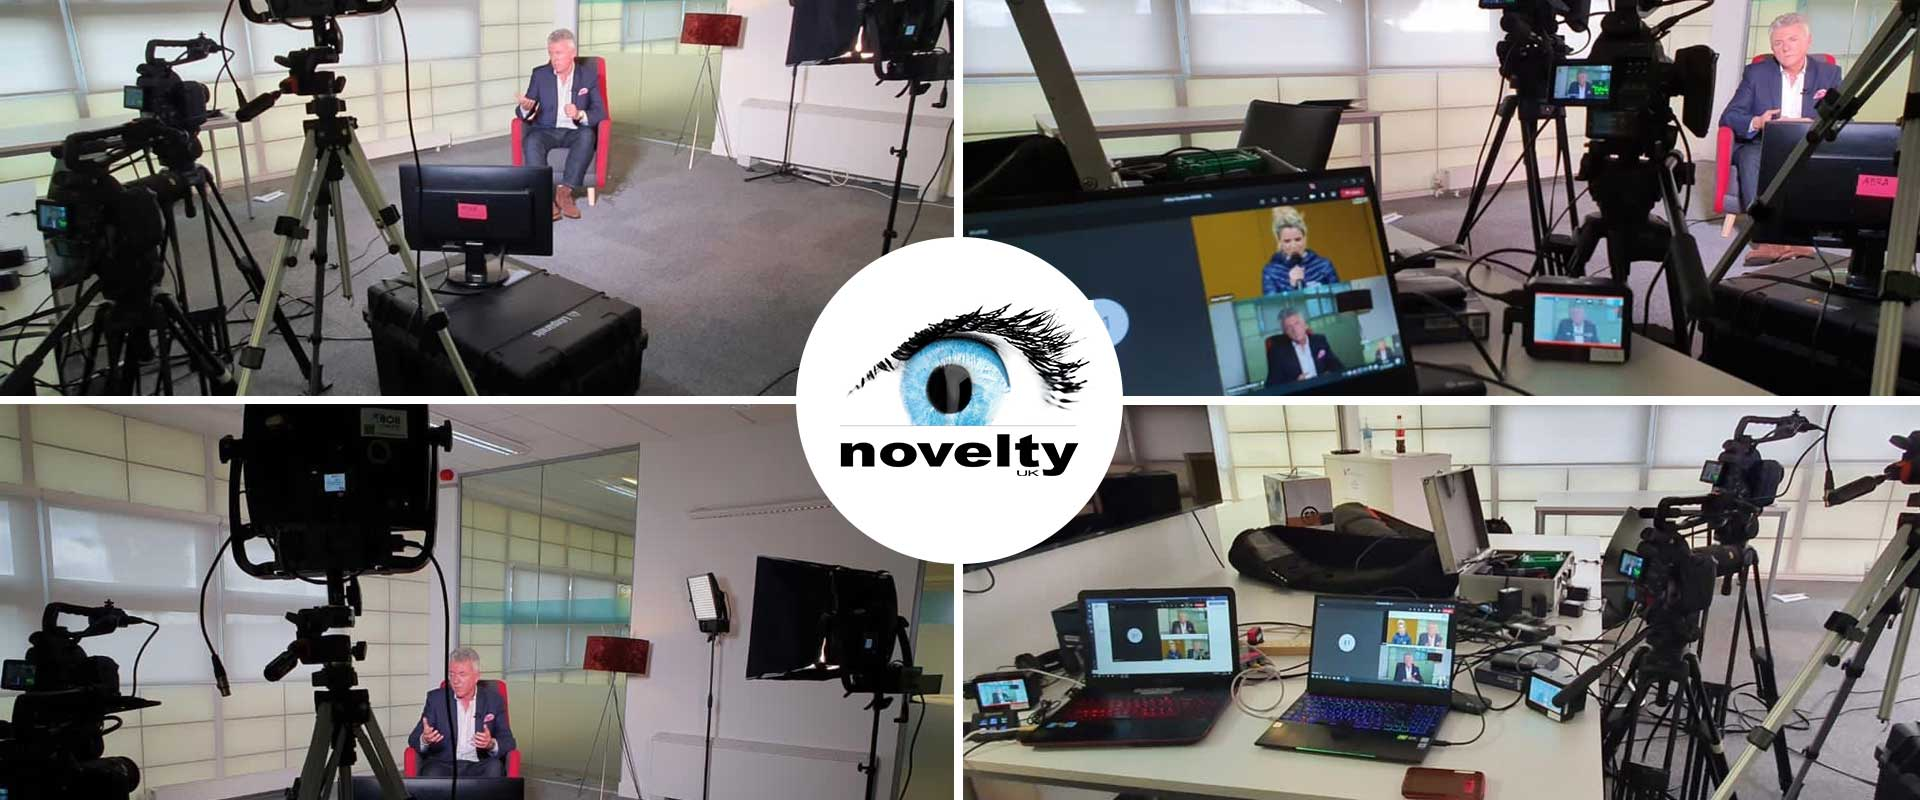 "Visuel Novelty UK's team filming and streaming for the digital event ""Renault eWays"""